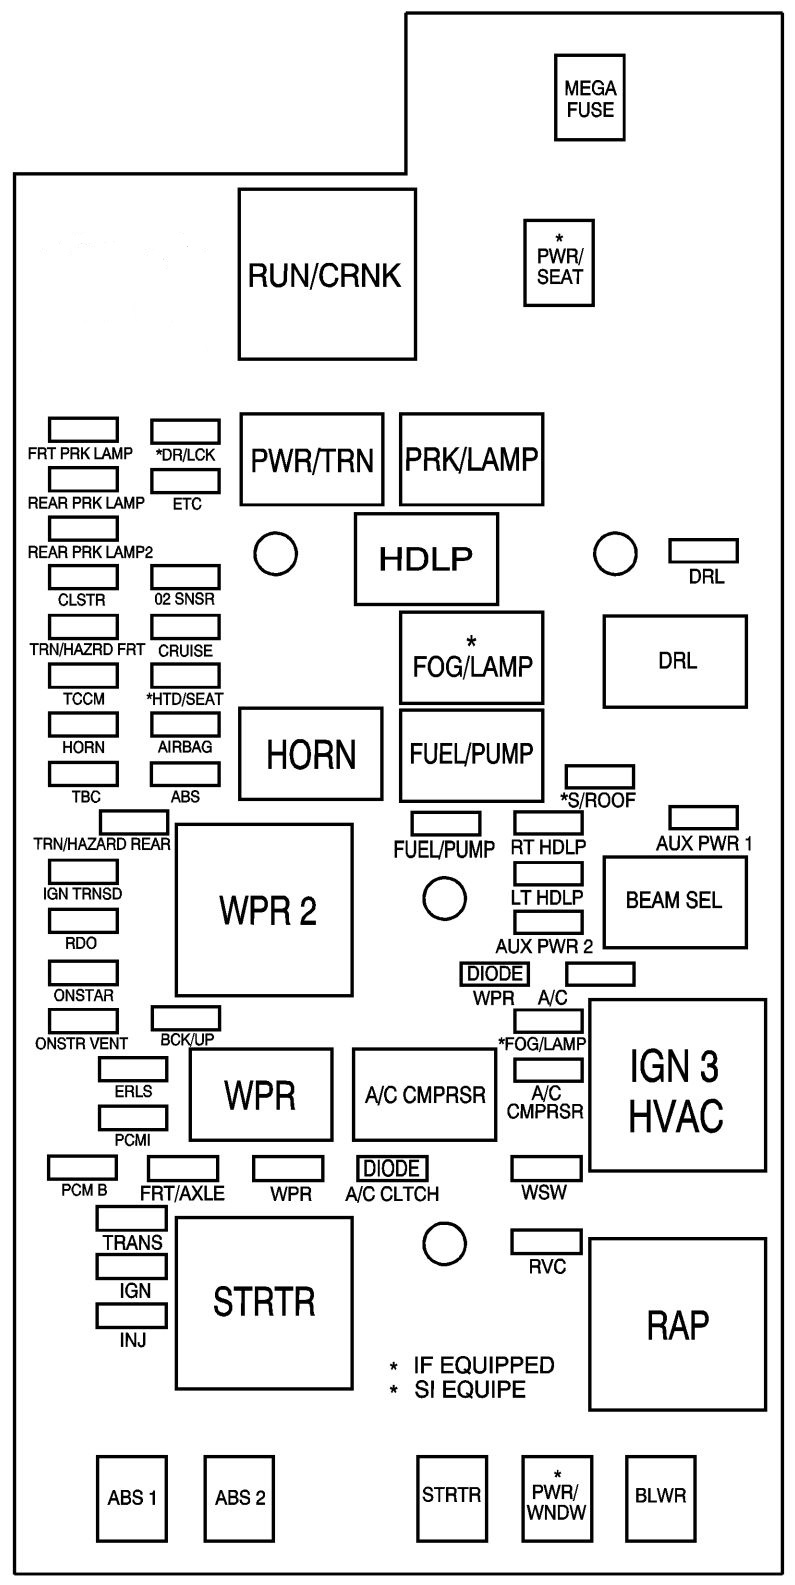 medium resolution of 2004 chevy impala fuse diagram wiring diagram sort 06 impala fuse box diagram